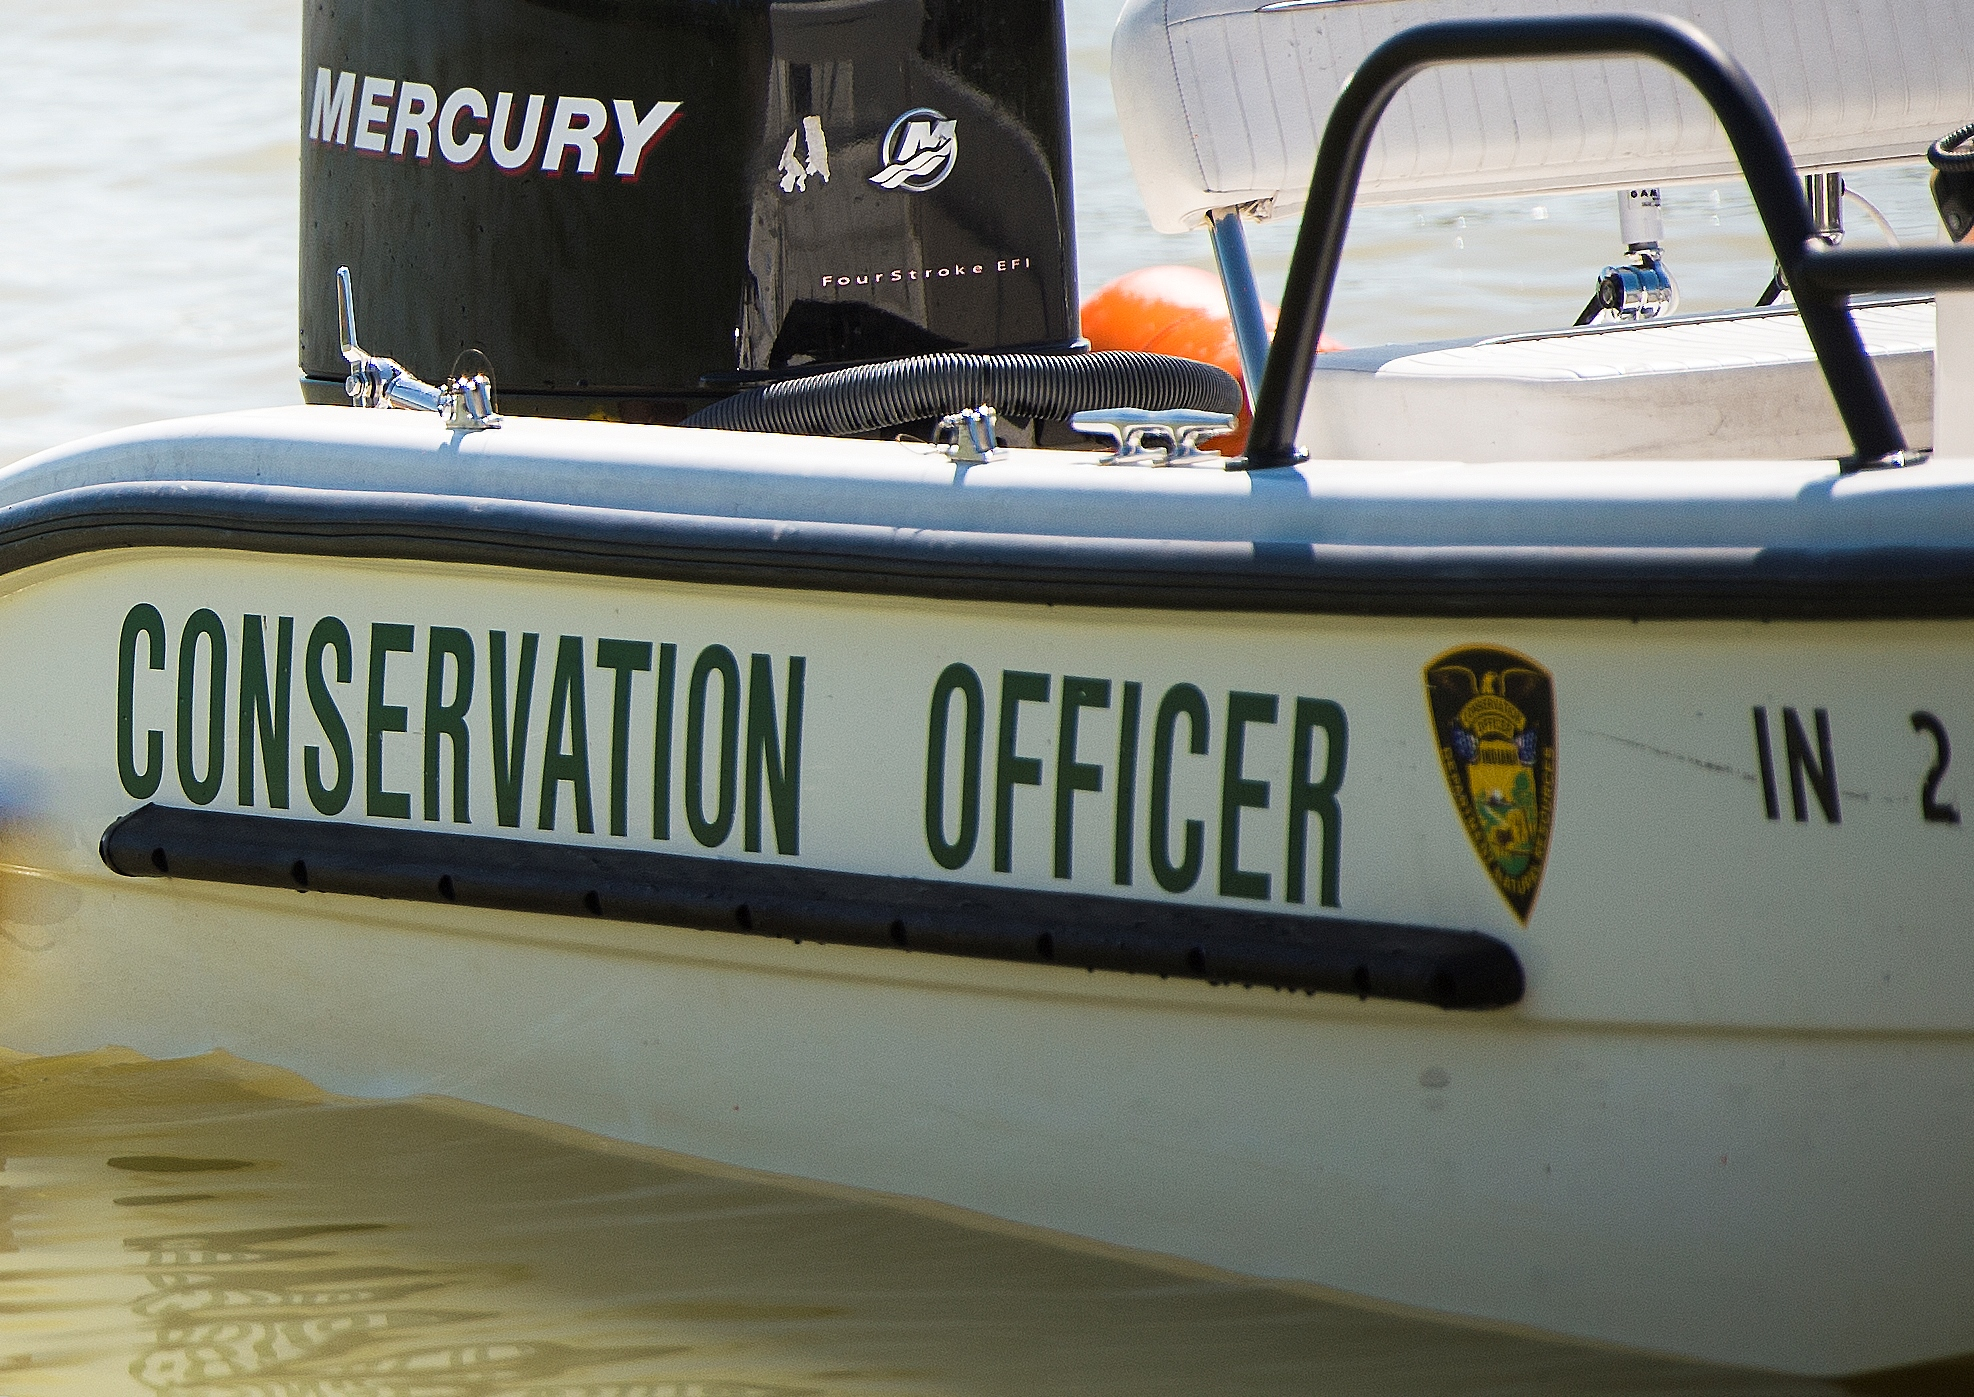 Conservation officer boat DNR